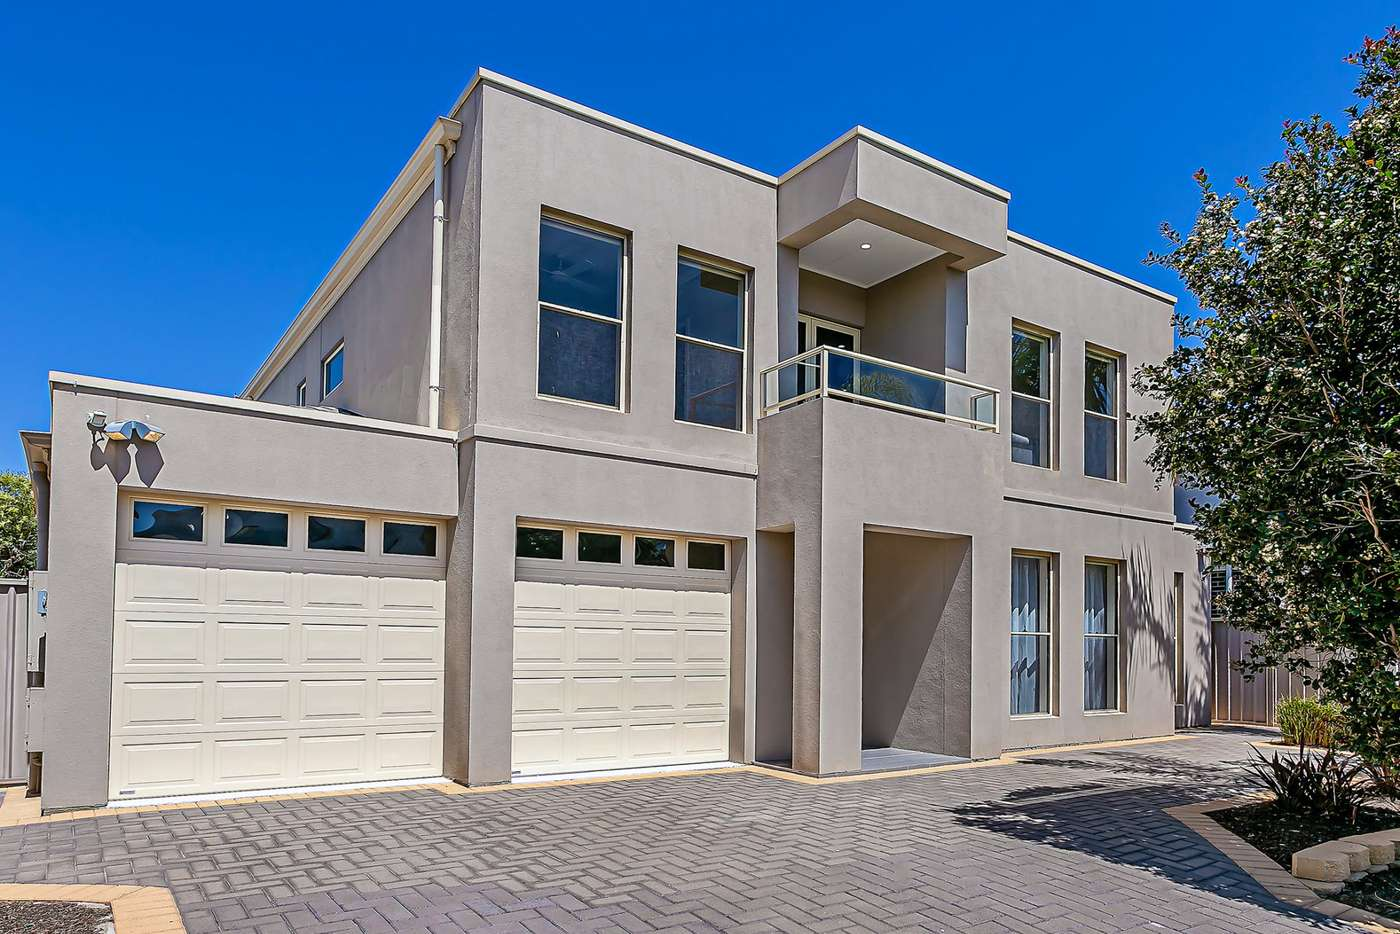 Main view of Homely house listing, 21 Antigua Grove, West Lakes SA 5021